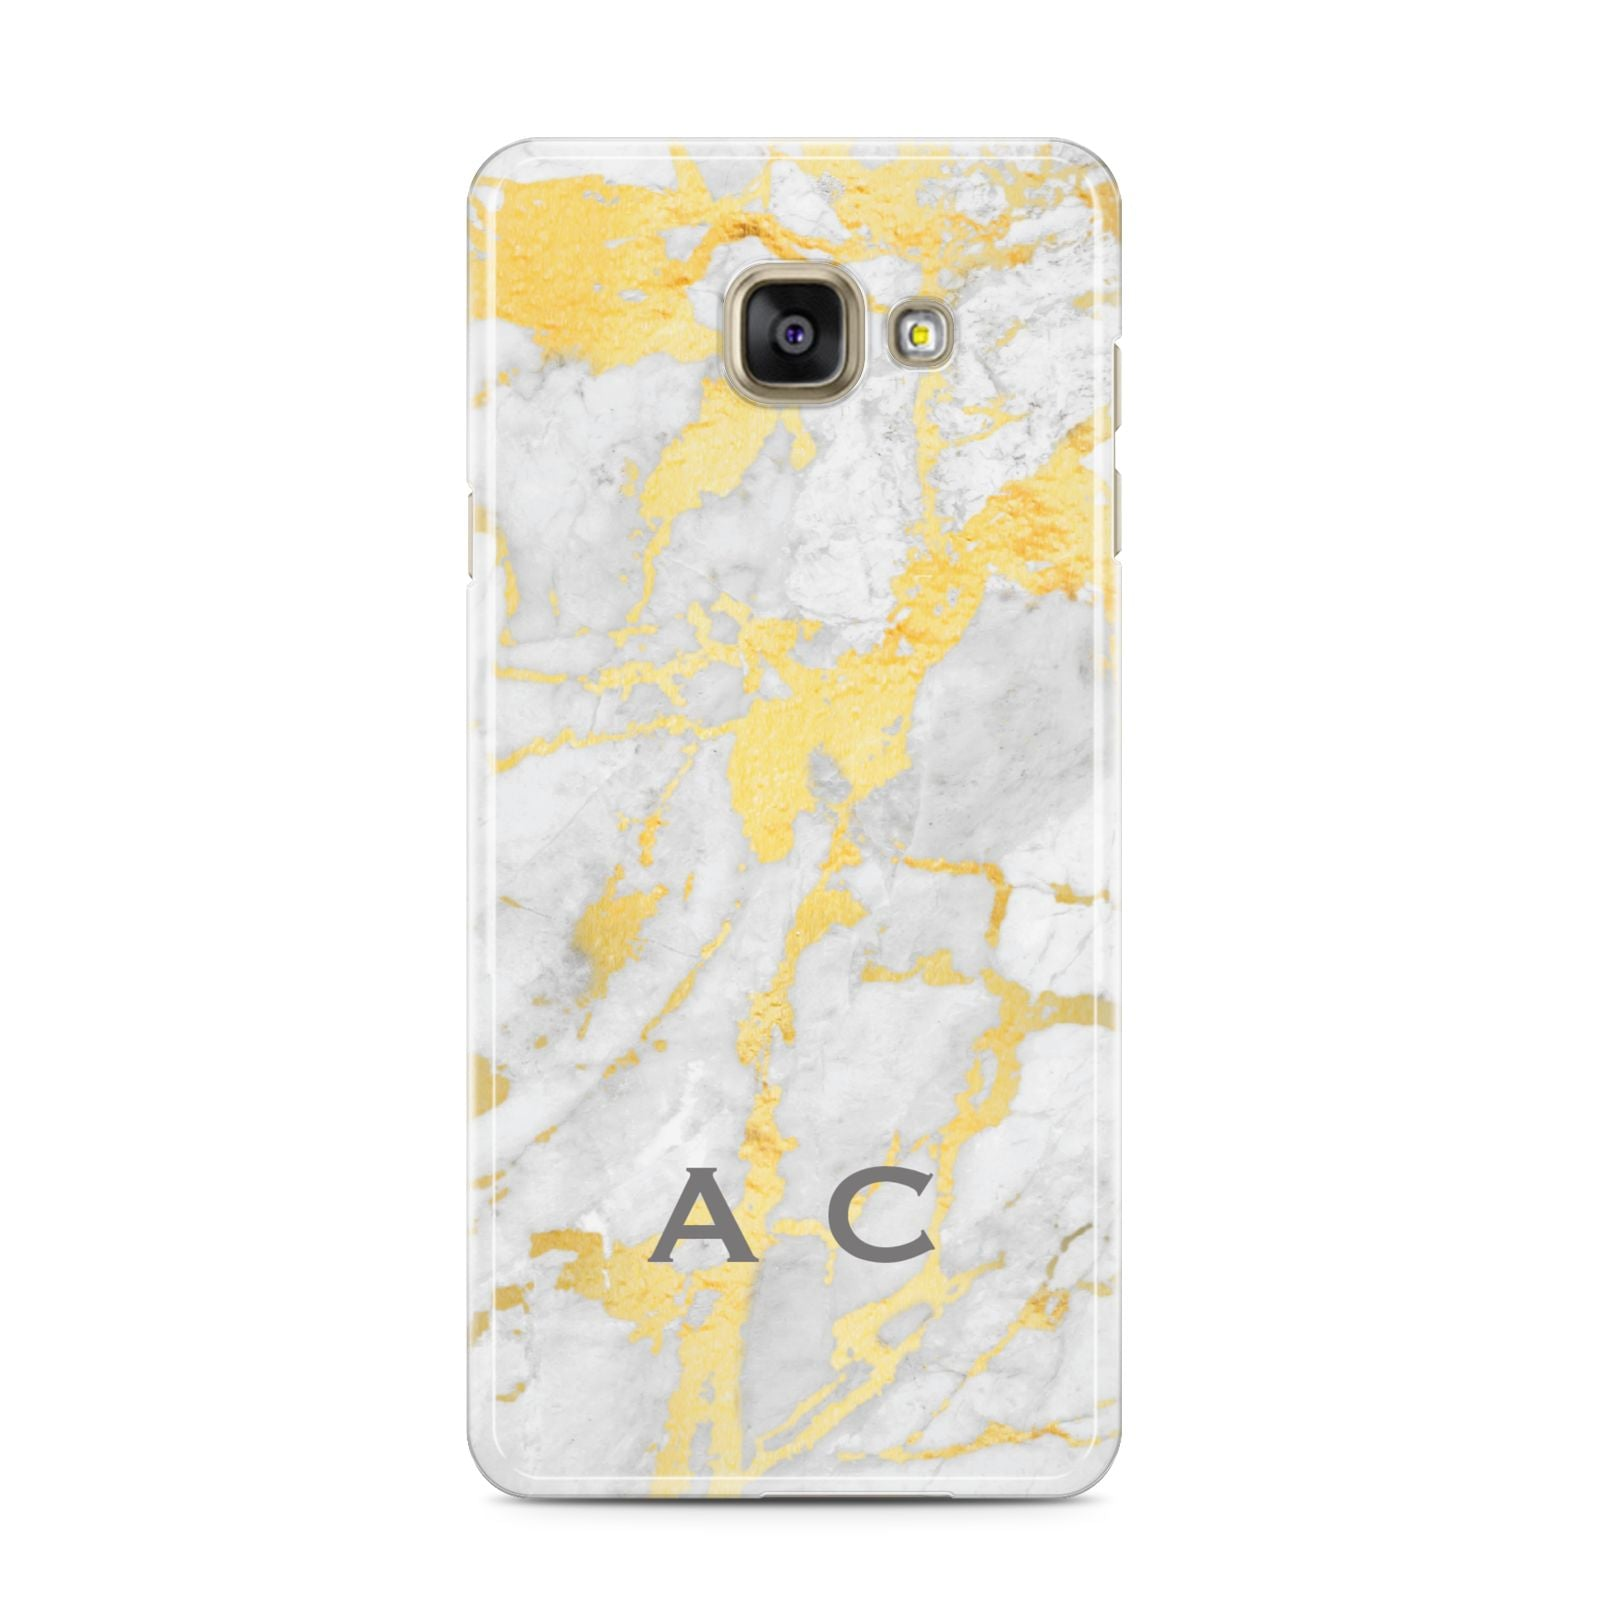 Gold Marble Initials Personalised Samsung Galaxy A3 2016 Case on gold phone